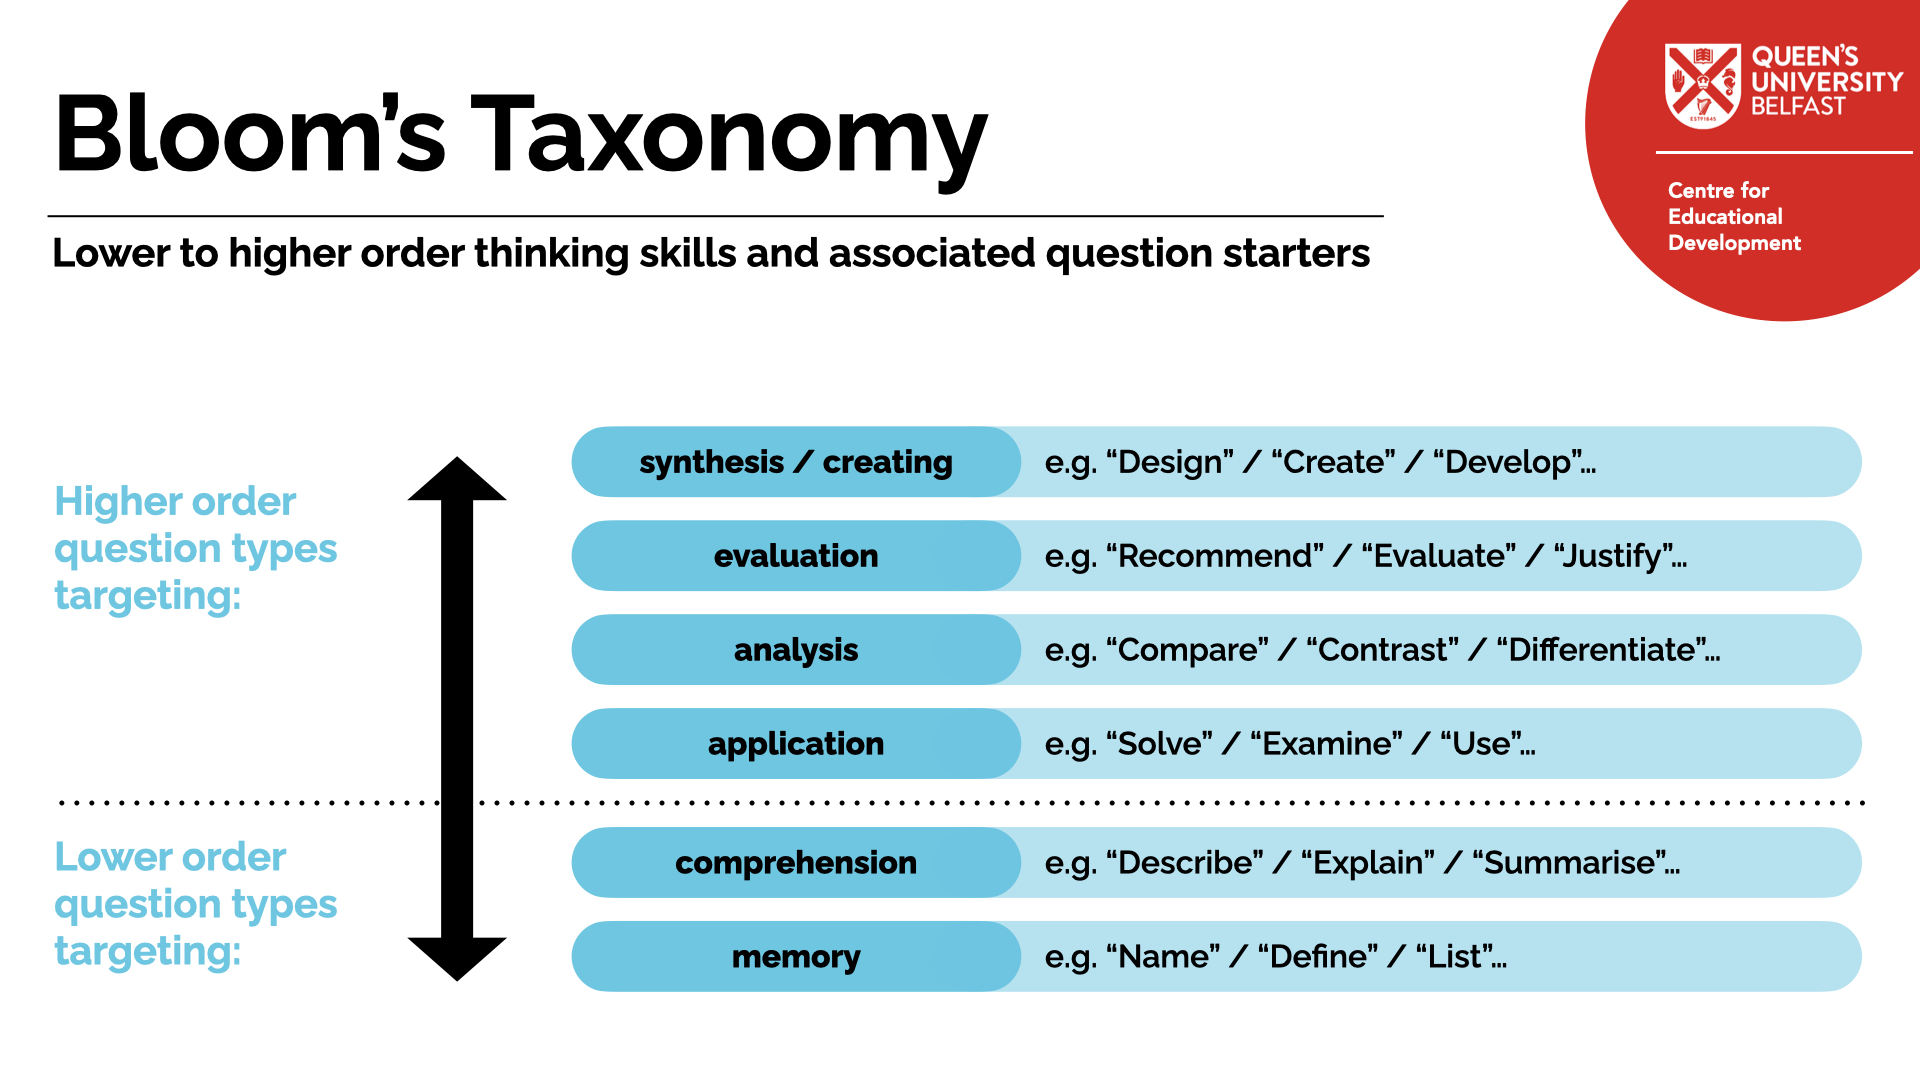 Blooms Taxonomy question starters showing higher order and lower order question types.